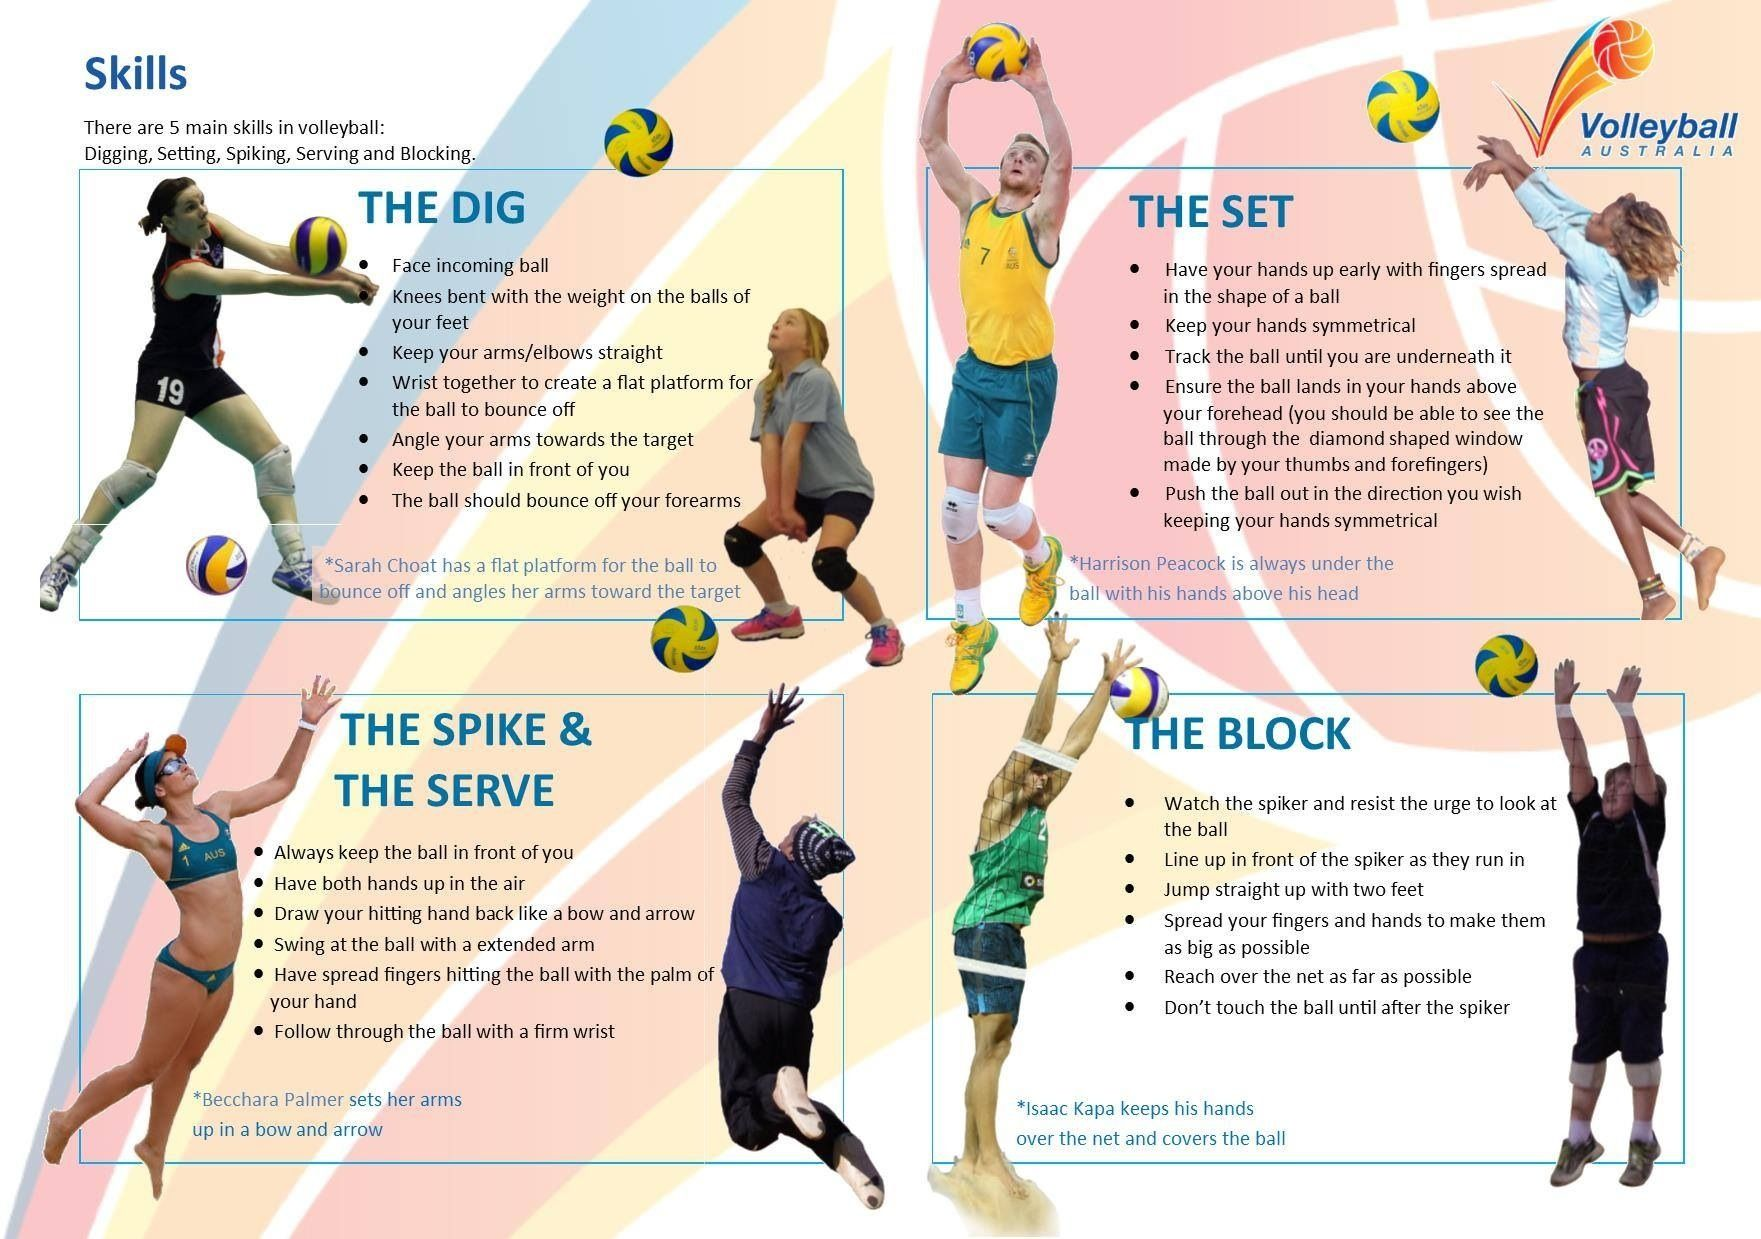 Volleyball Board Cover In 2020 Volleyball Soccer Ball Soccer